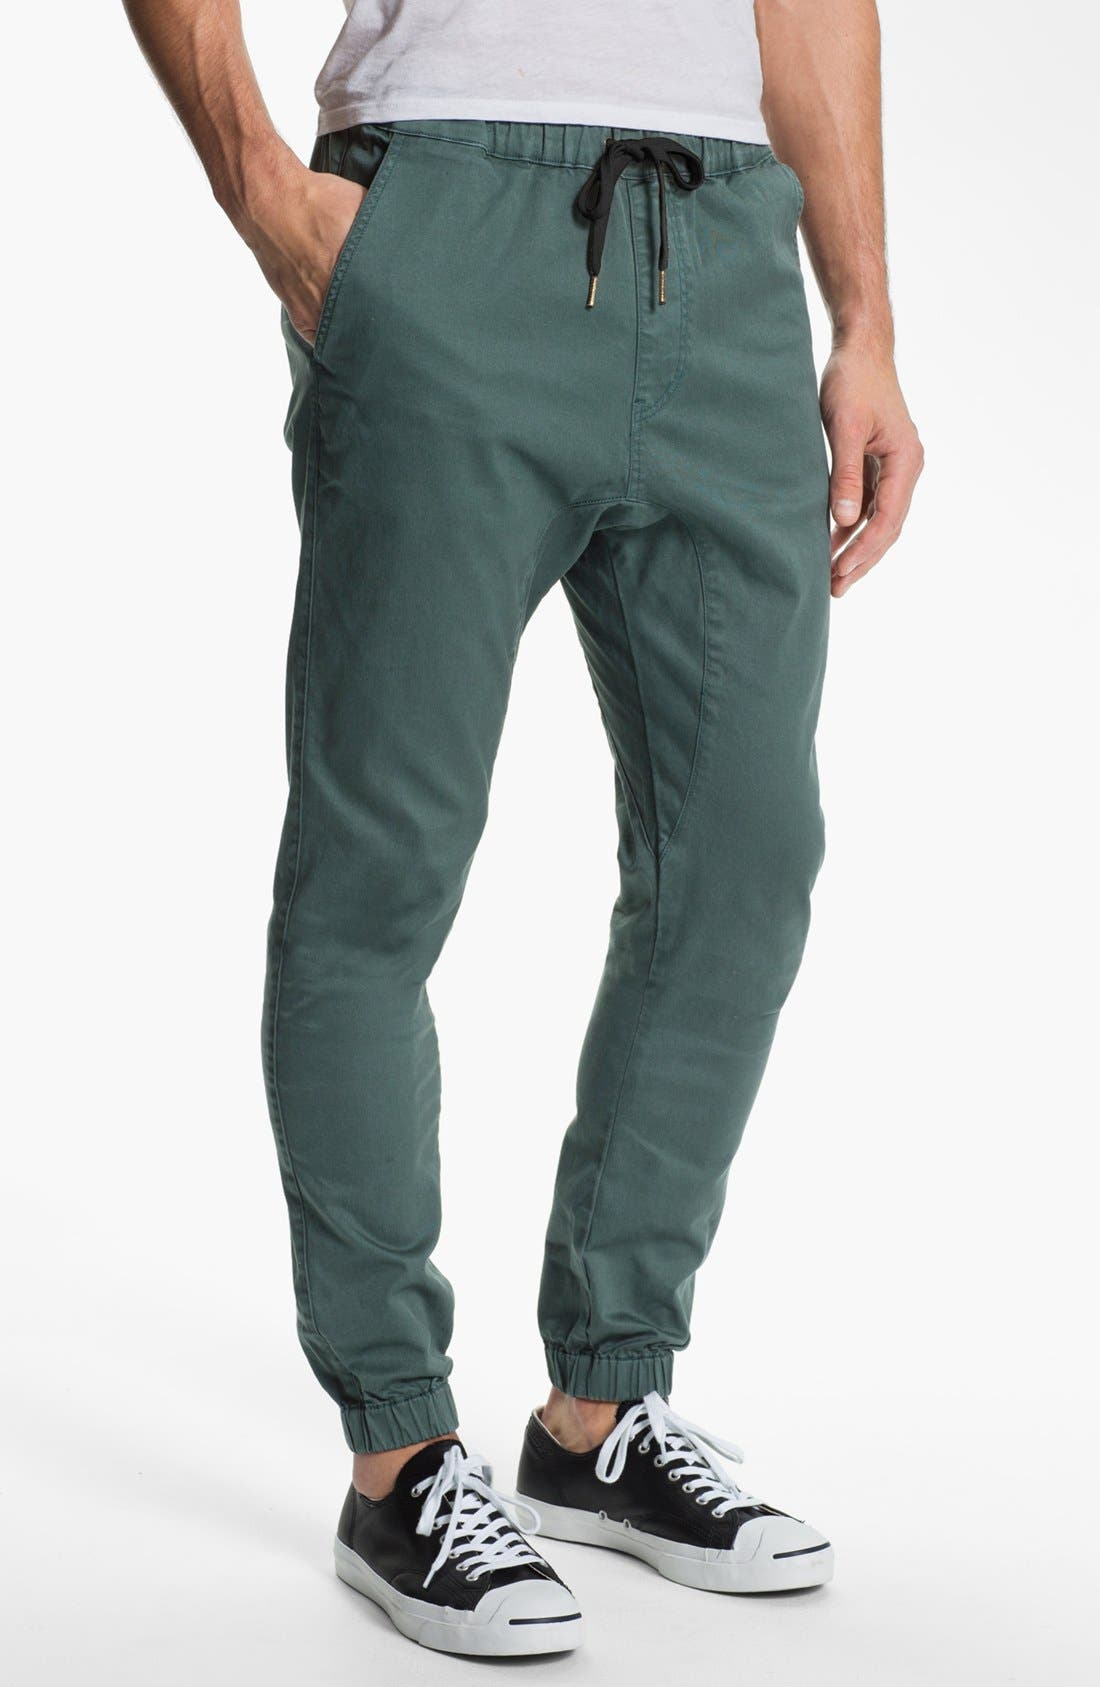 Alternate Image 1 Selected - ZANEROBE 'Sureshot' Slim Tapered Leg Jogger Pants